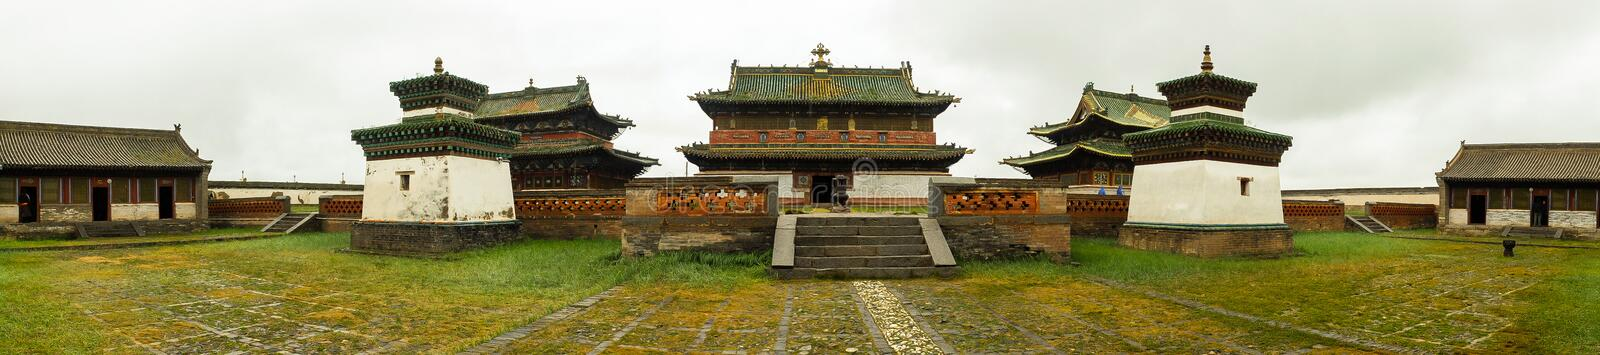 Monastery in Mongolia royalty free stock photography